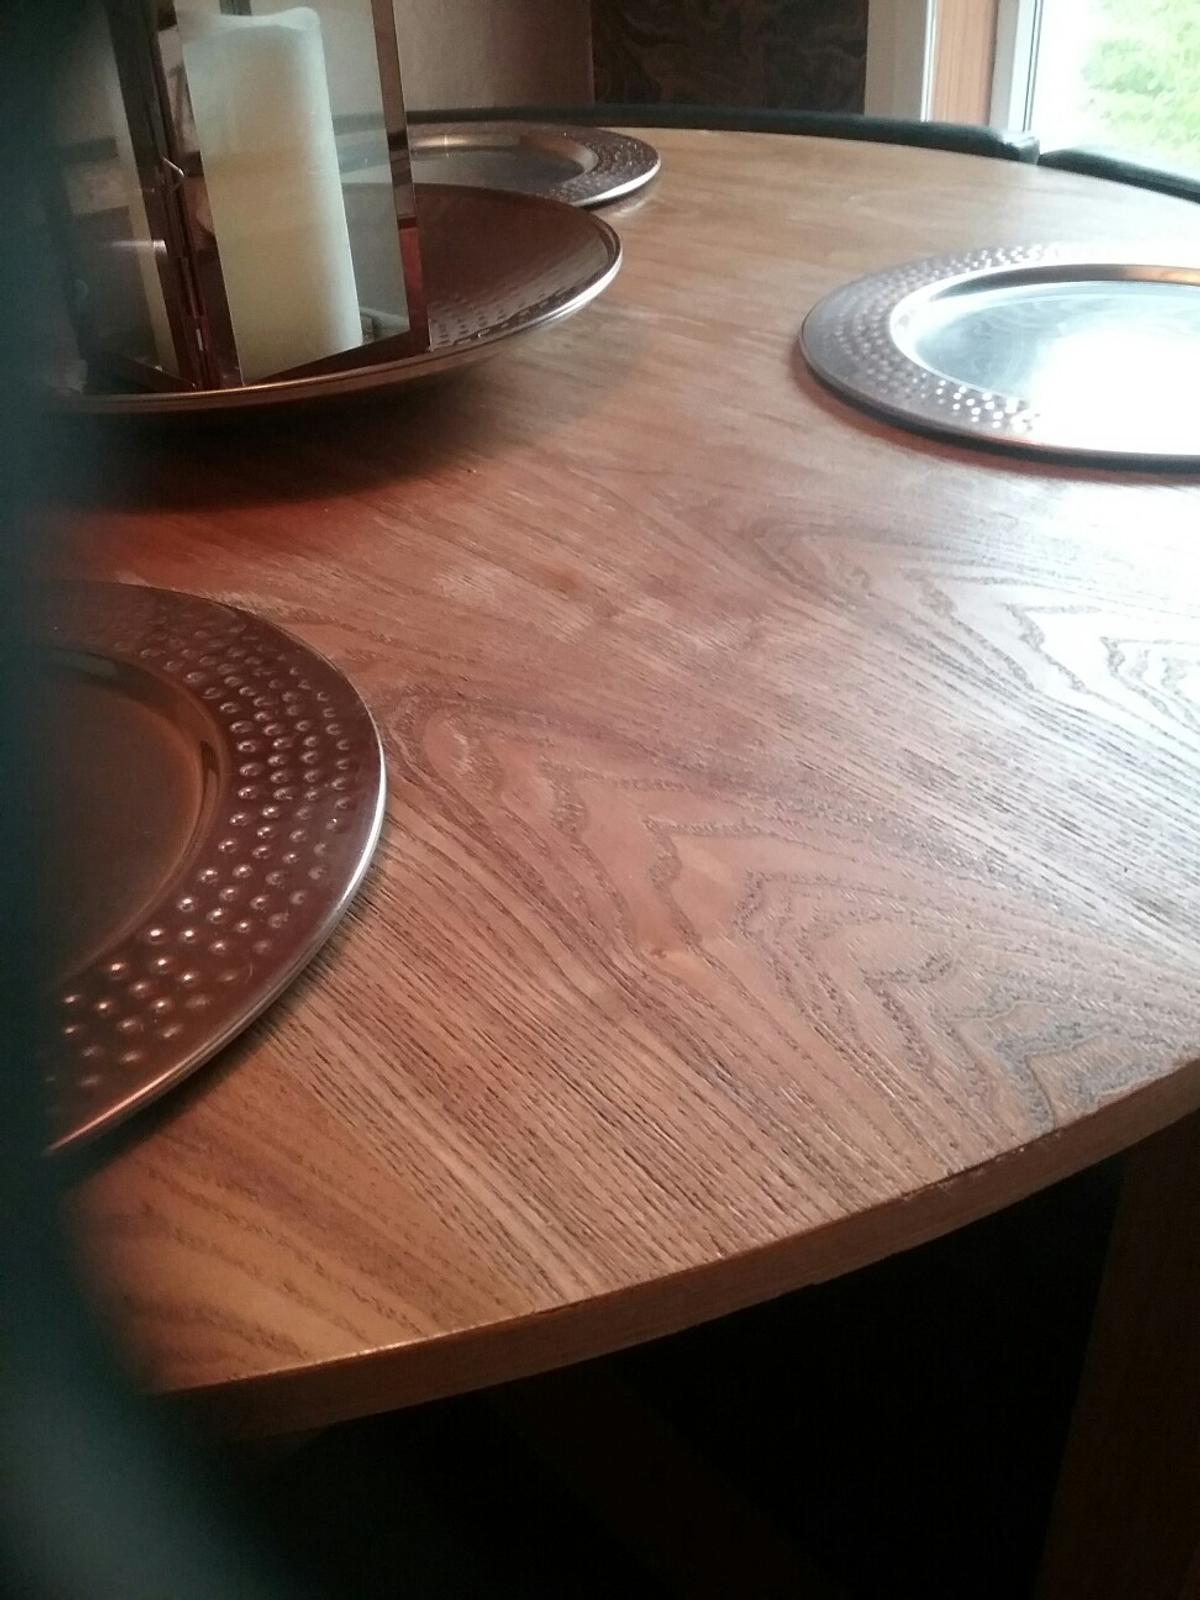 Dining Room Table And Booth Style Chairs In Eh54 Livingston For 50 00 For Sale Shpock